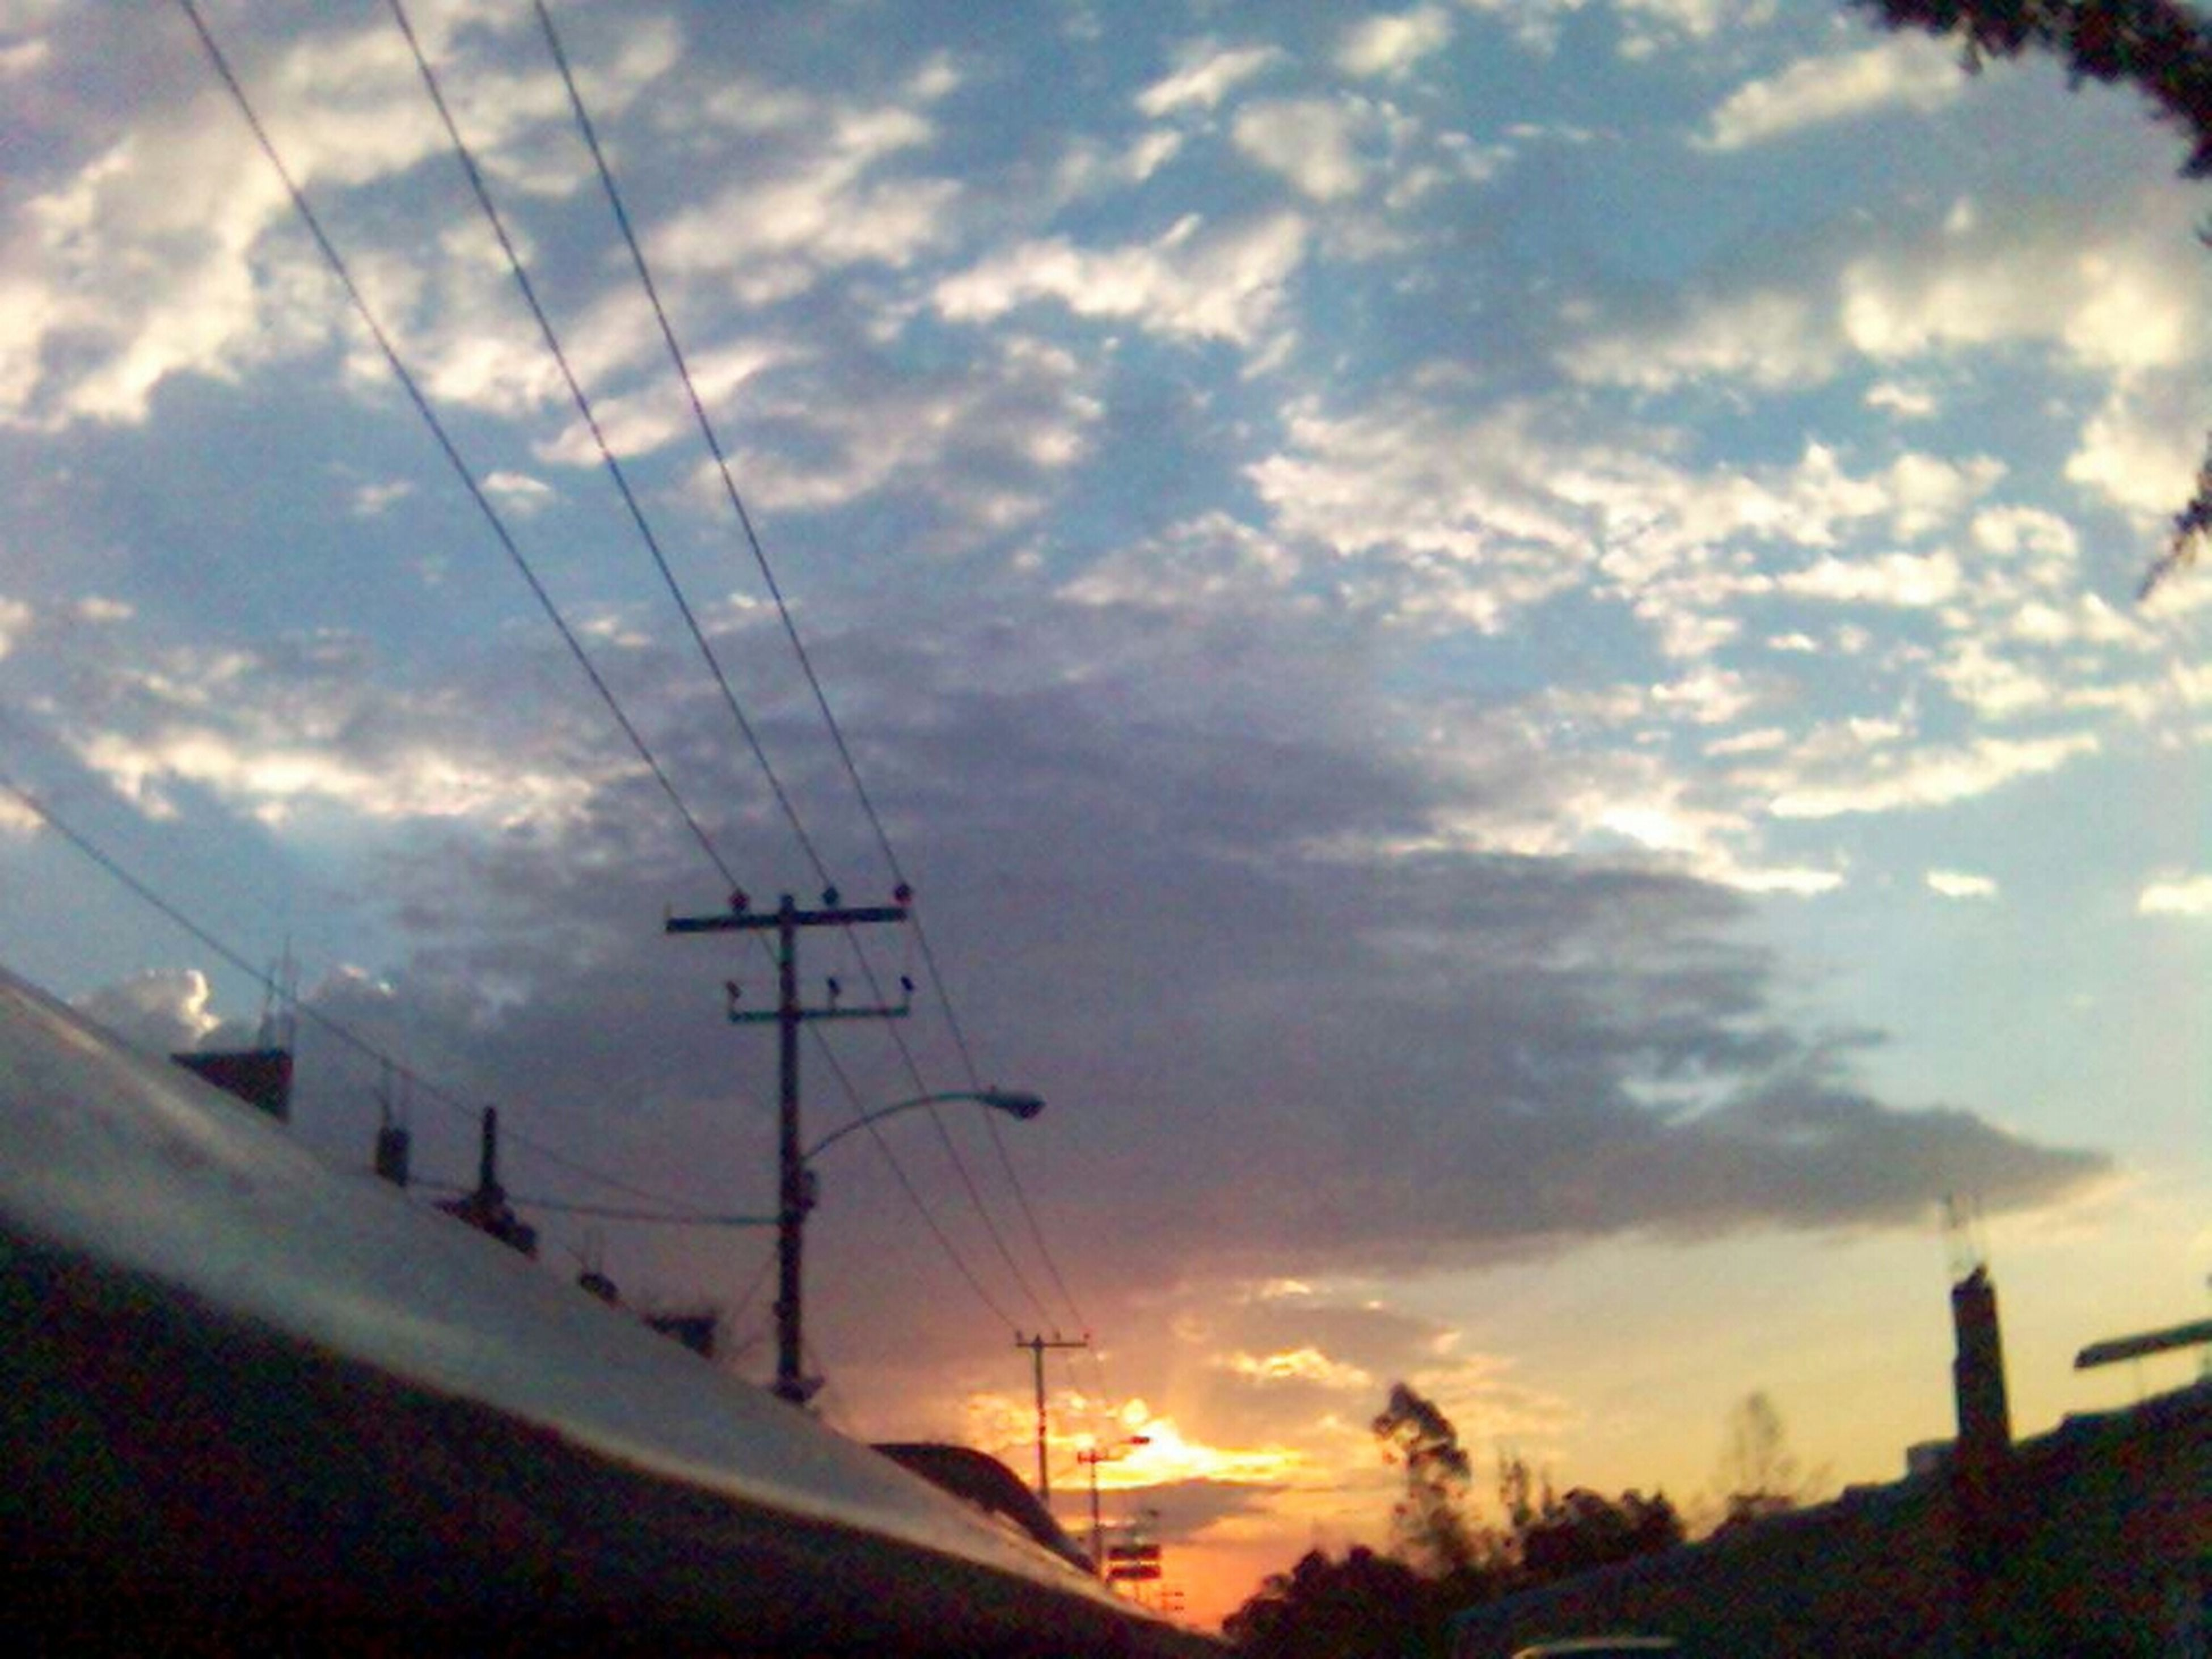 power line, sky, sunset, electricity pylon, cloud - sky, electricity, cable, power supply, connection, beauty in nature, silhouette, scenics, cloud, nature, transportation, cloudy, tranquil scene, tranquility, tree, low angle view